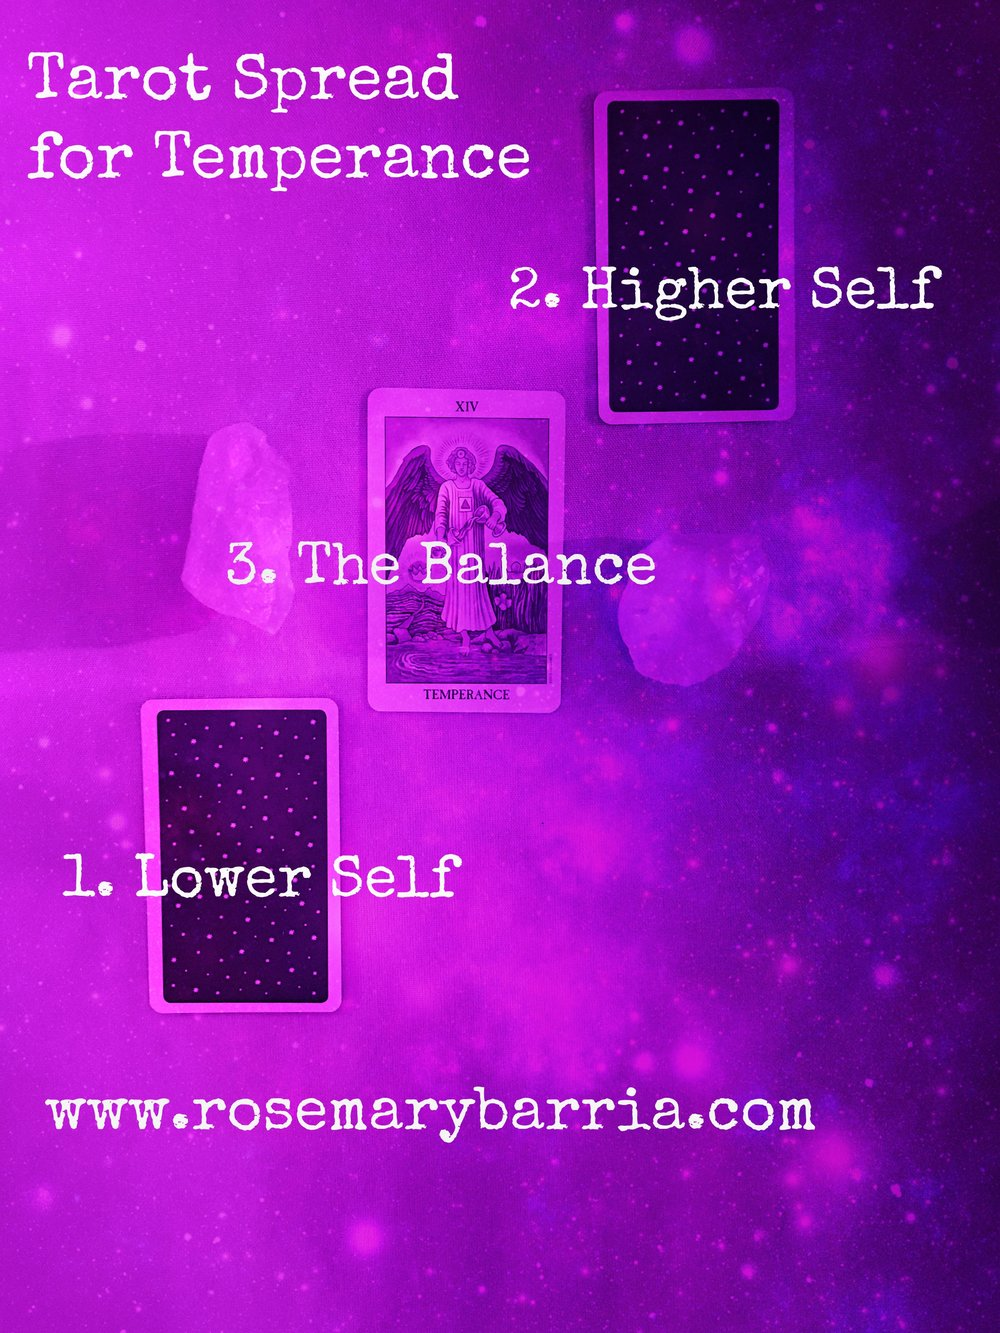 Tarot Spread for Temperance